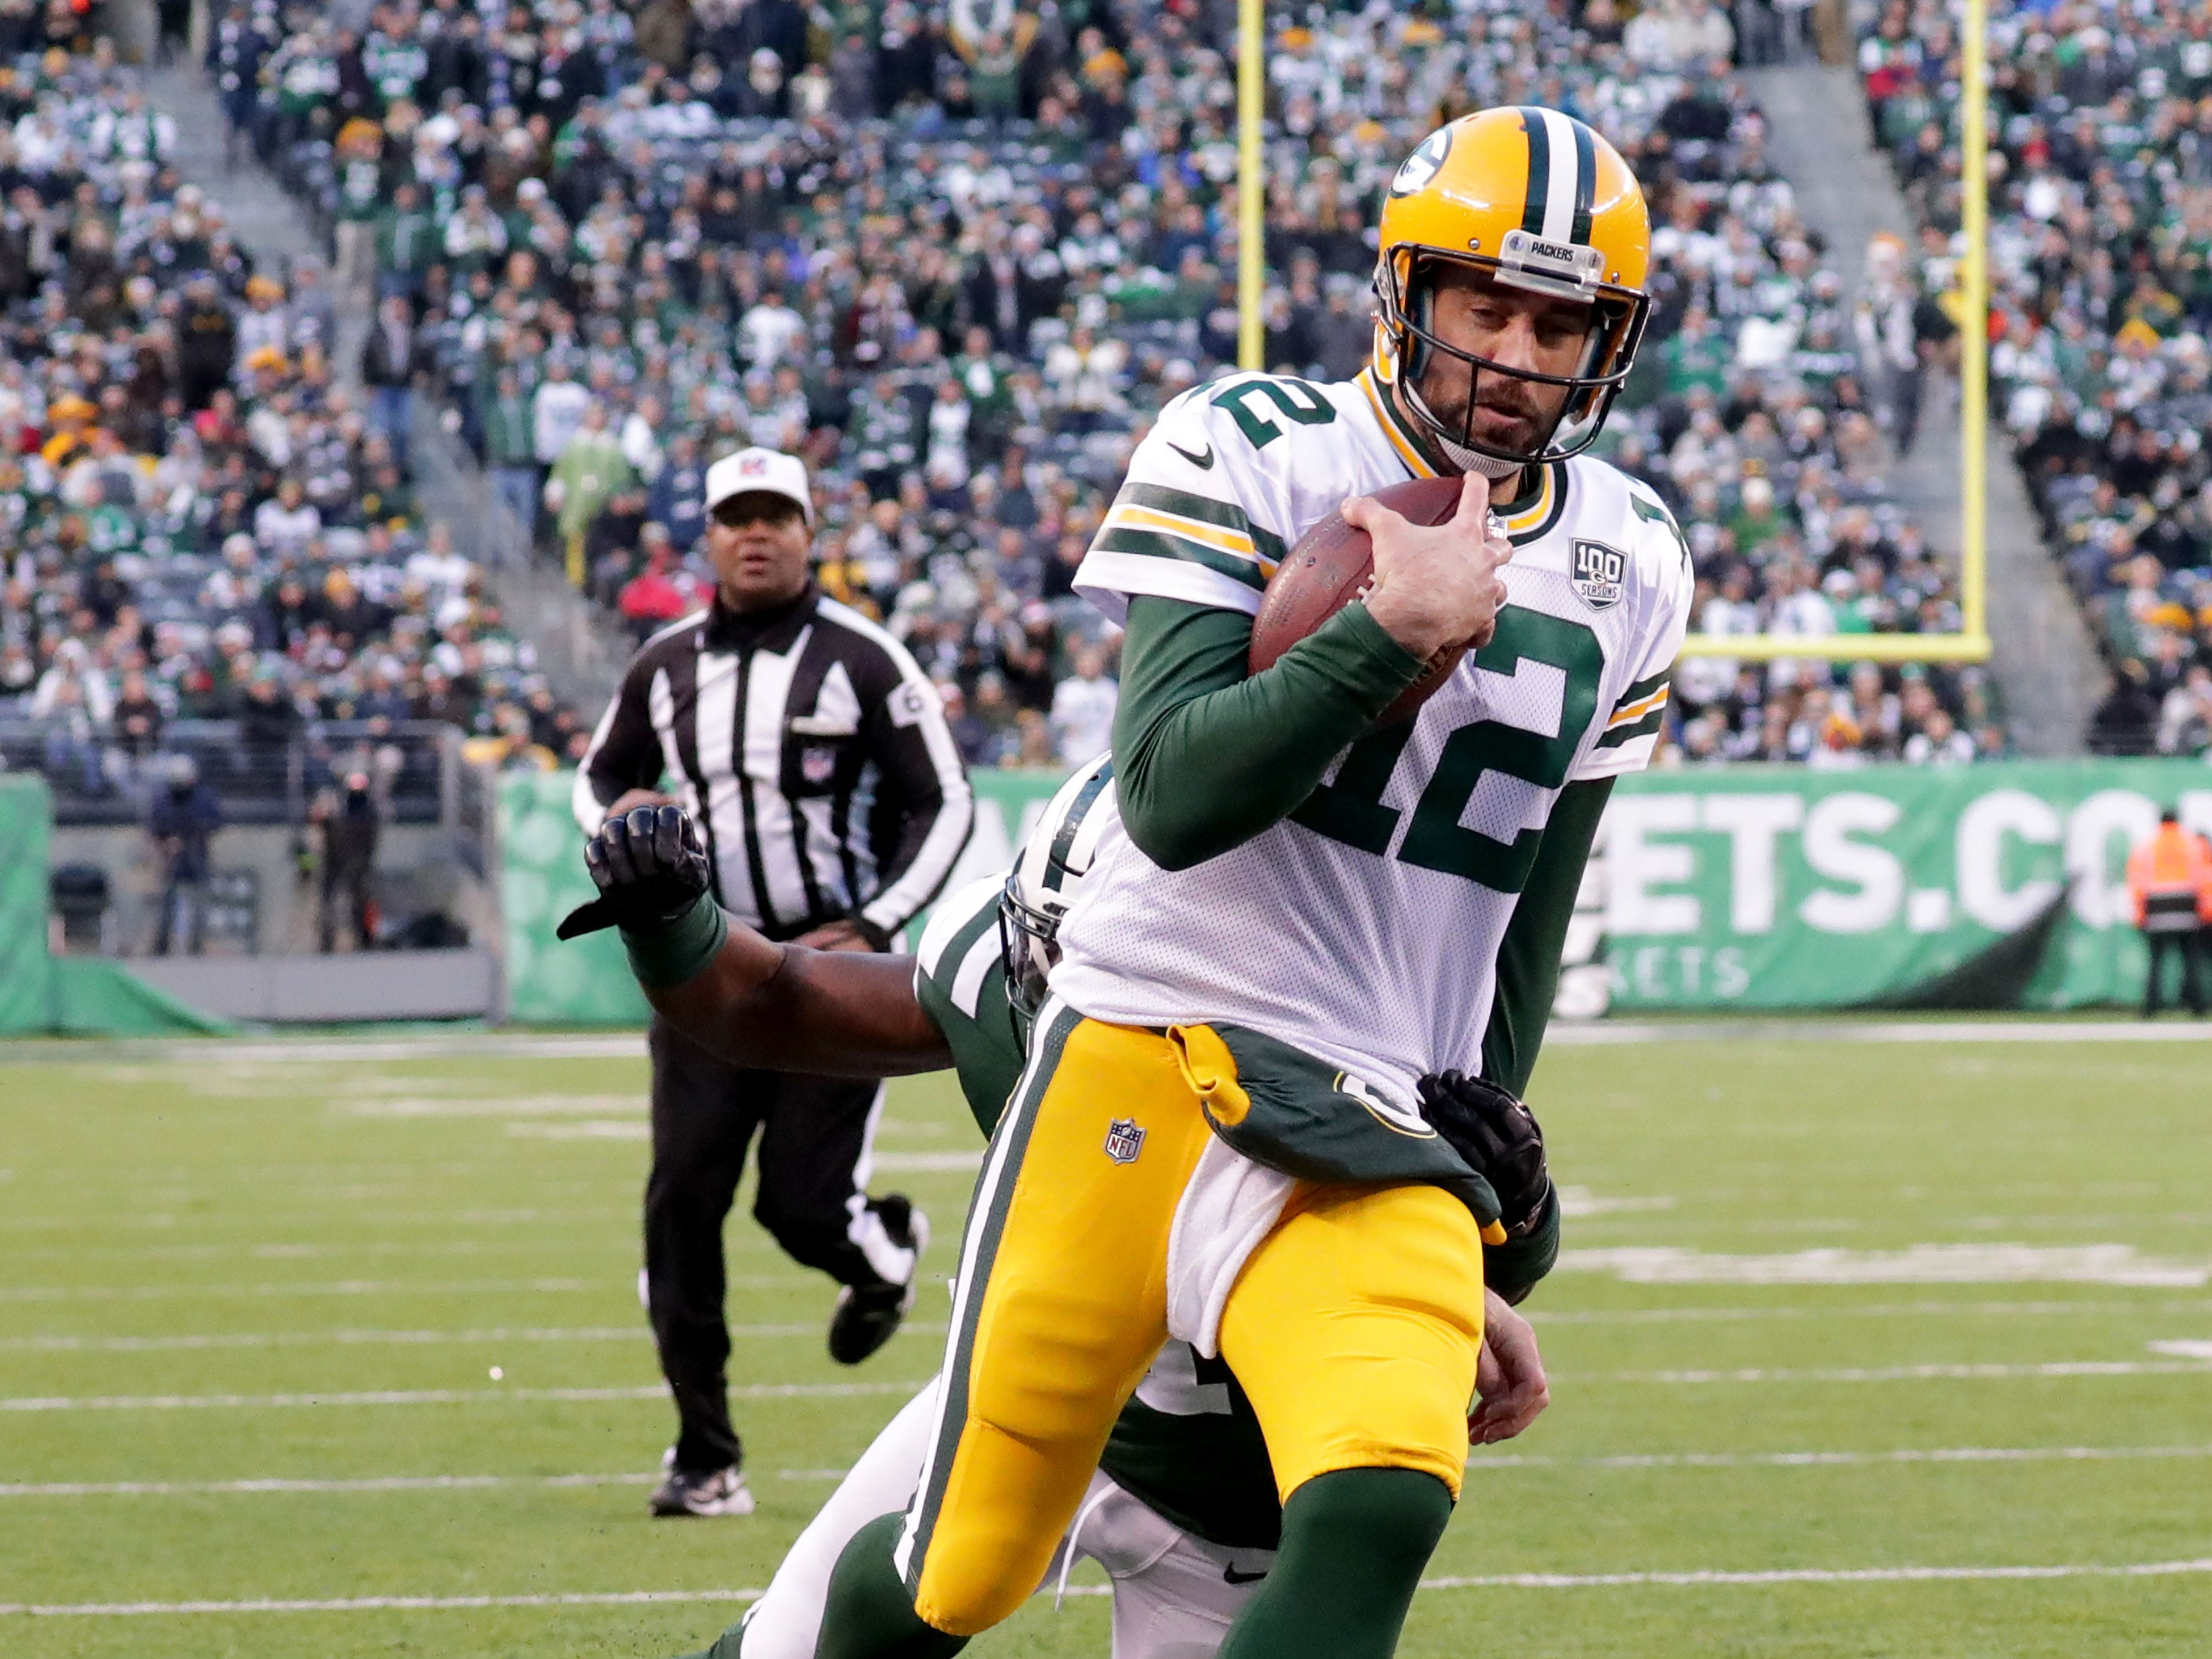 Green Bay Packers' Aaron Rodgers scores a touchdown during the 2nd half of Packers 44-38 overtime win against the New York Jets at MetLife Stadium Sunday, Dec. 23, 2018, in East Rutherford.